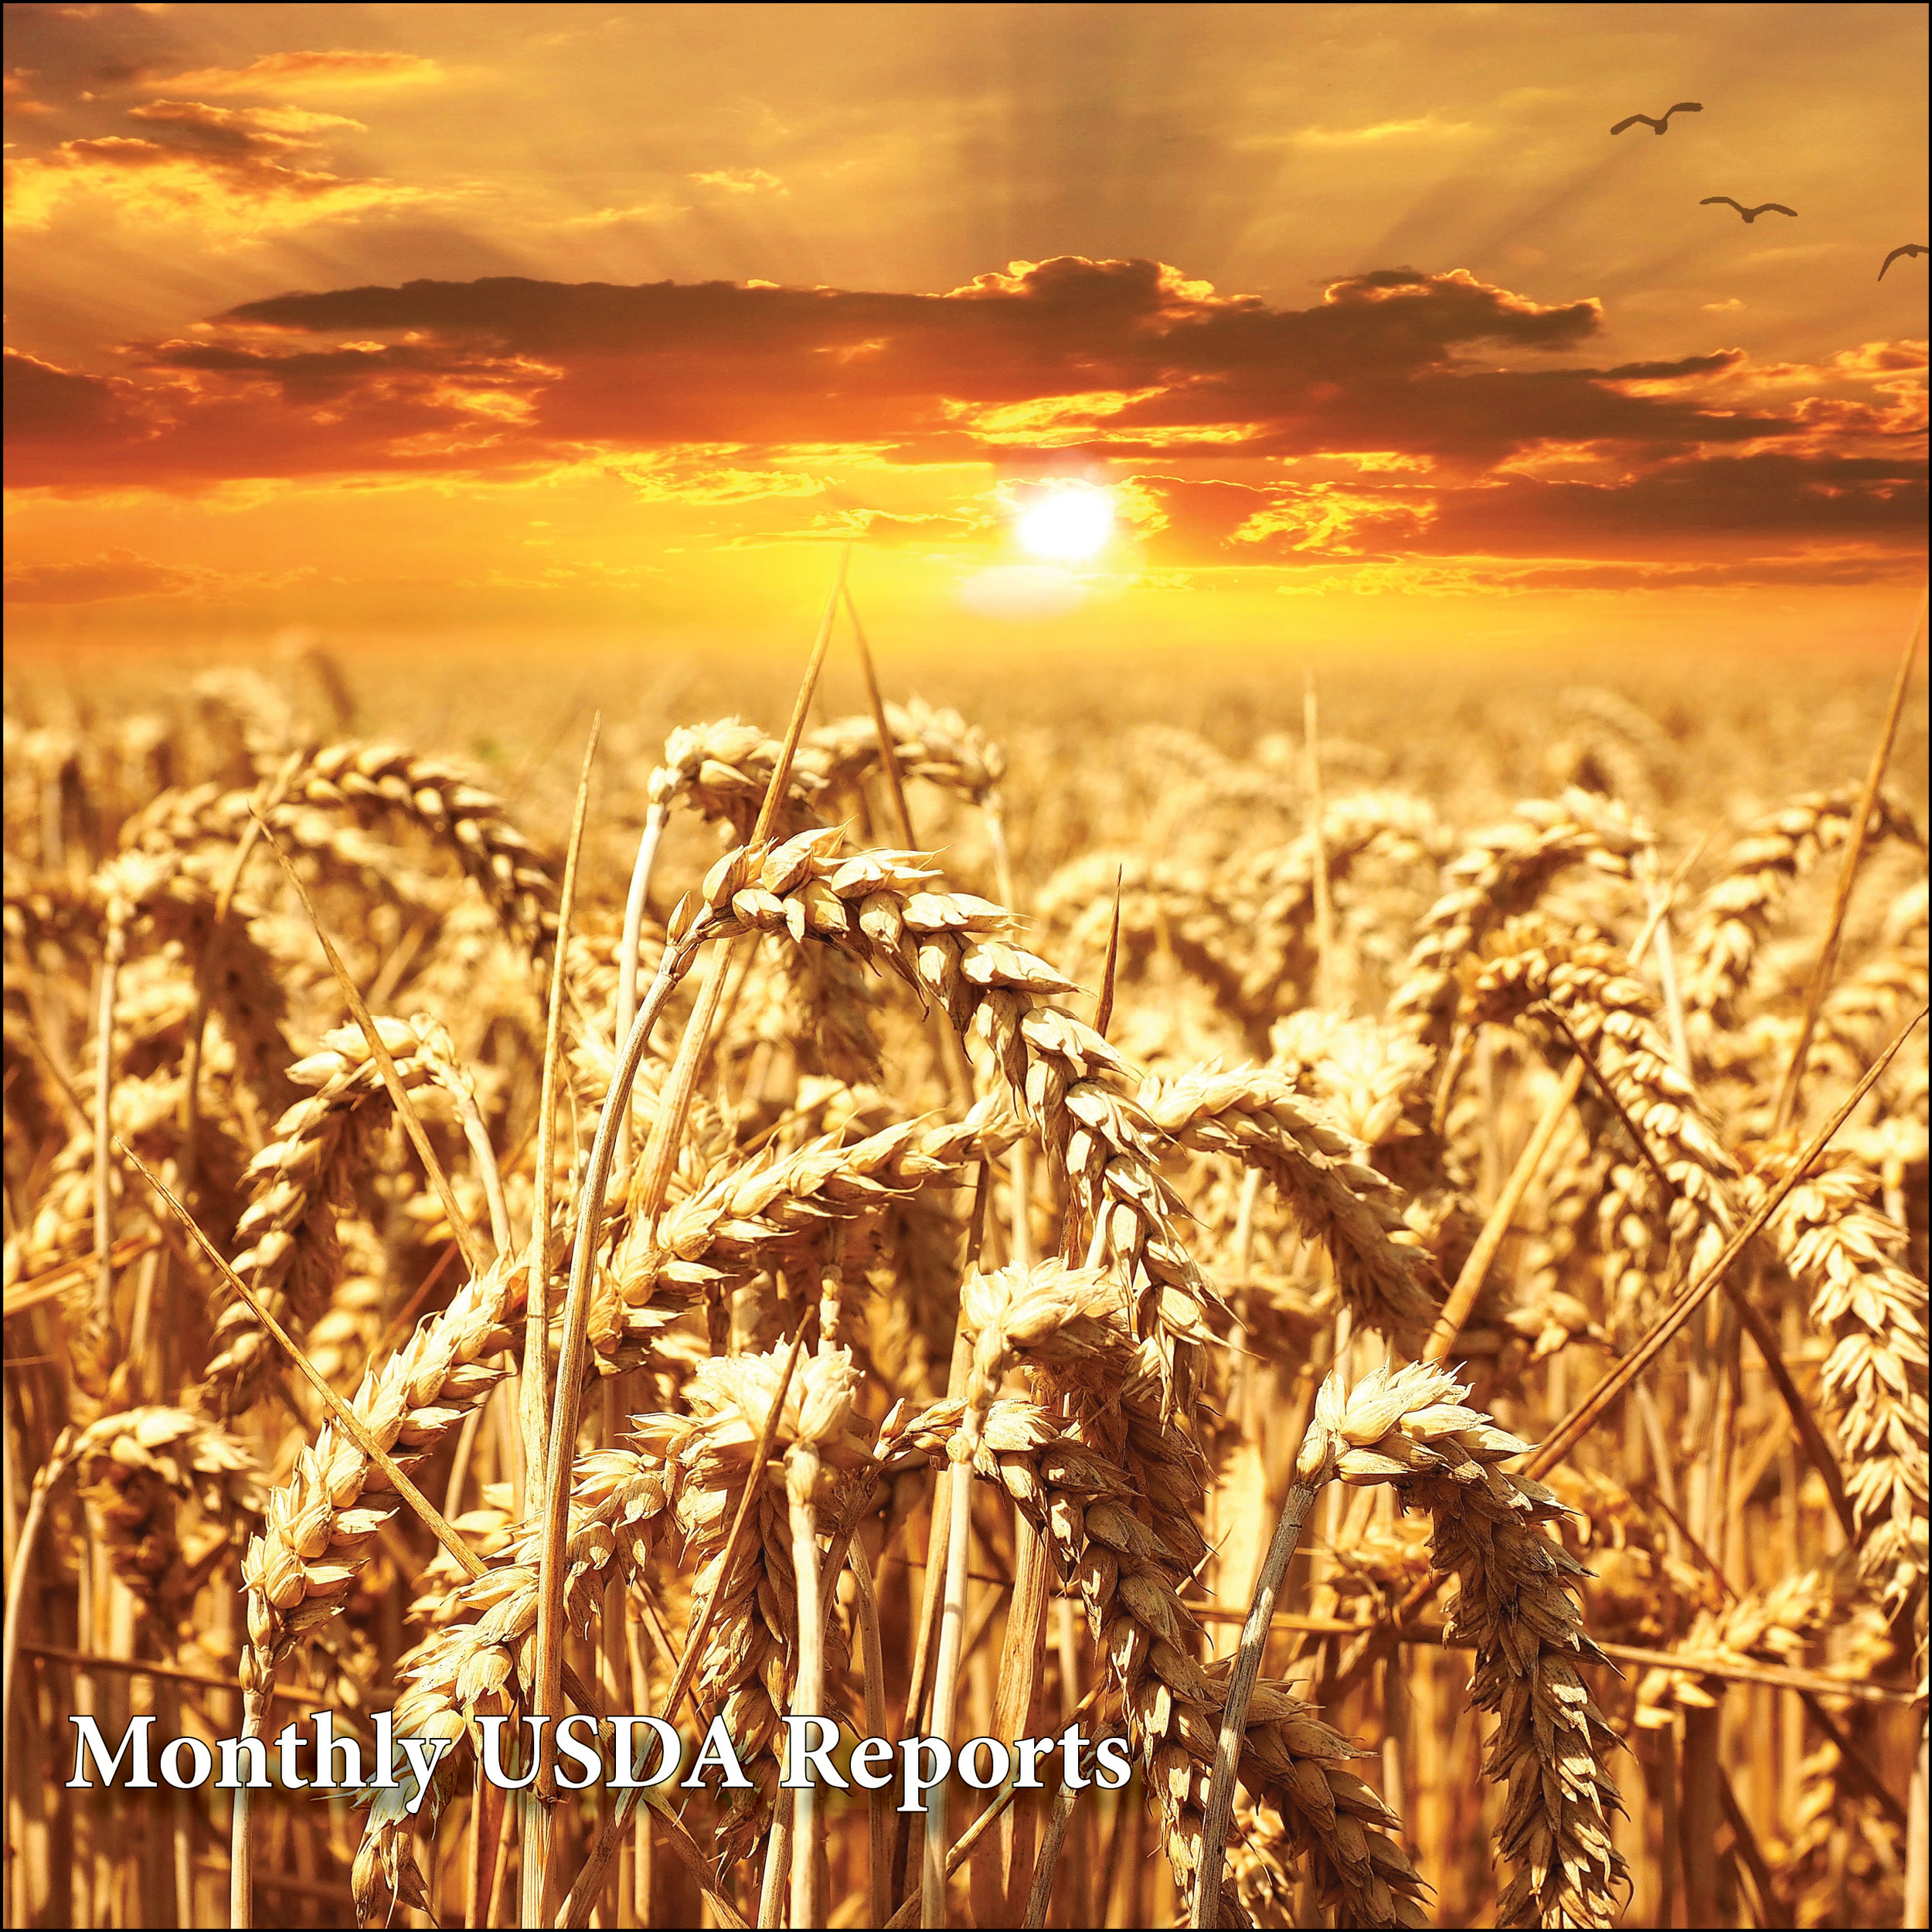 Monthly USDA Reports    USDA WORLD AGRICULTURAL SUPPLY & DEMAND    USDA LIVESTOCK, DAIRY & POULTRY OUTLOOK    USDA FEED OUTLOOK    USDA WHEAT OUTLOOK    USDA OIL CROPS REPORT